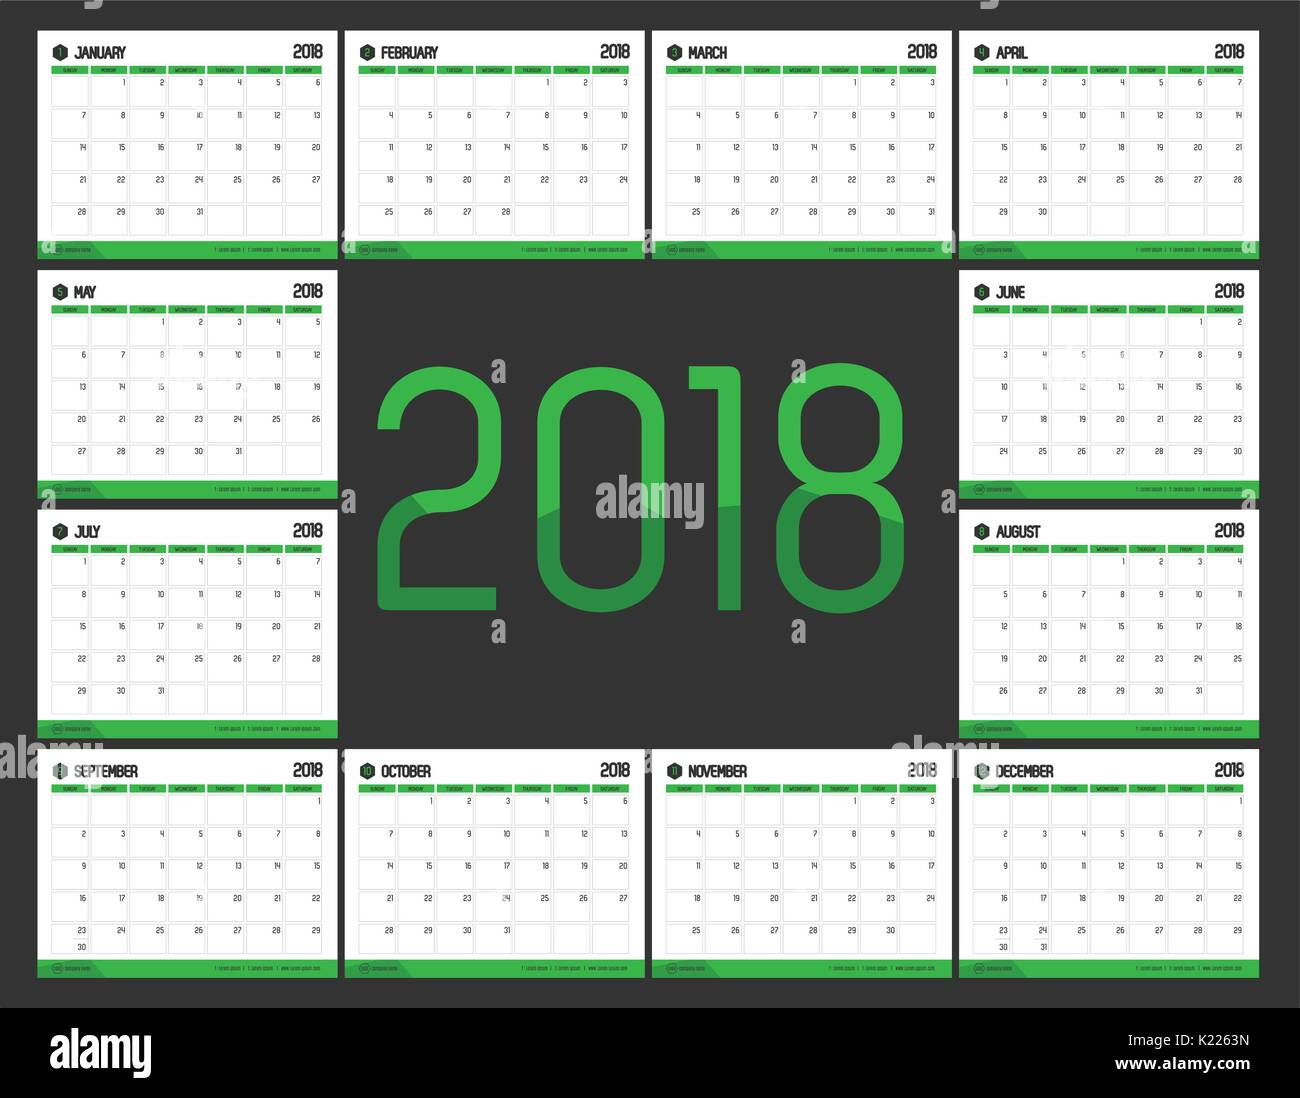 Calendar 2018 Stock Vector Images - Alamy